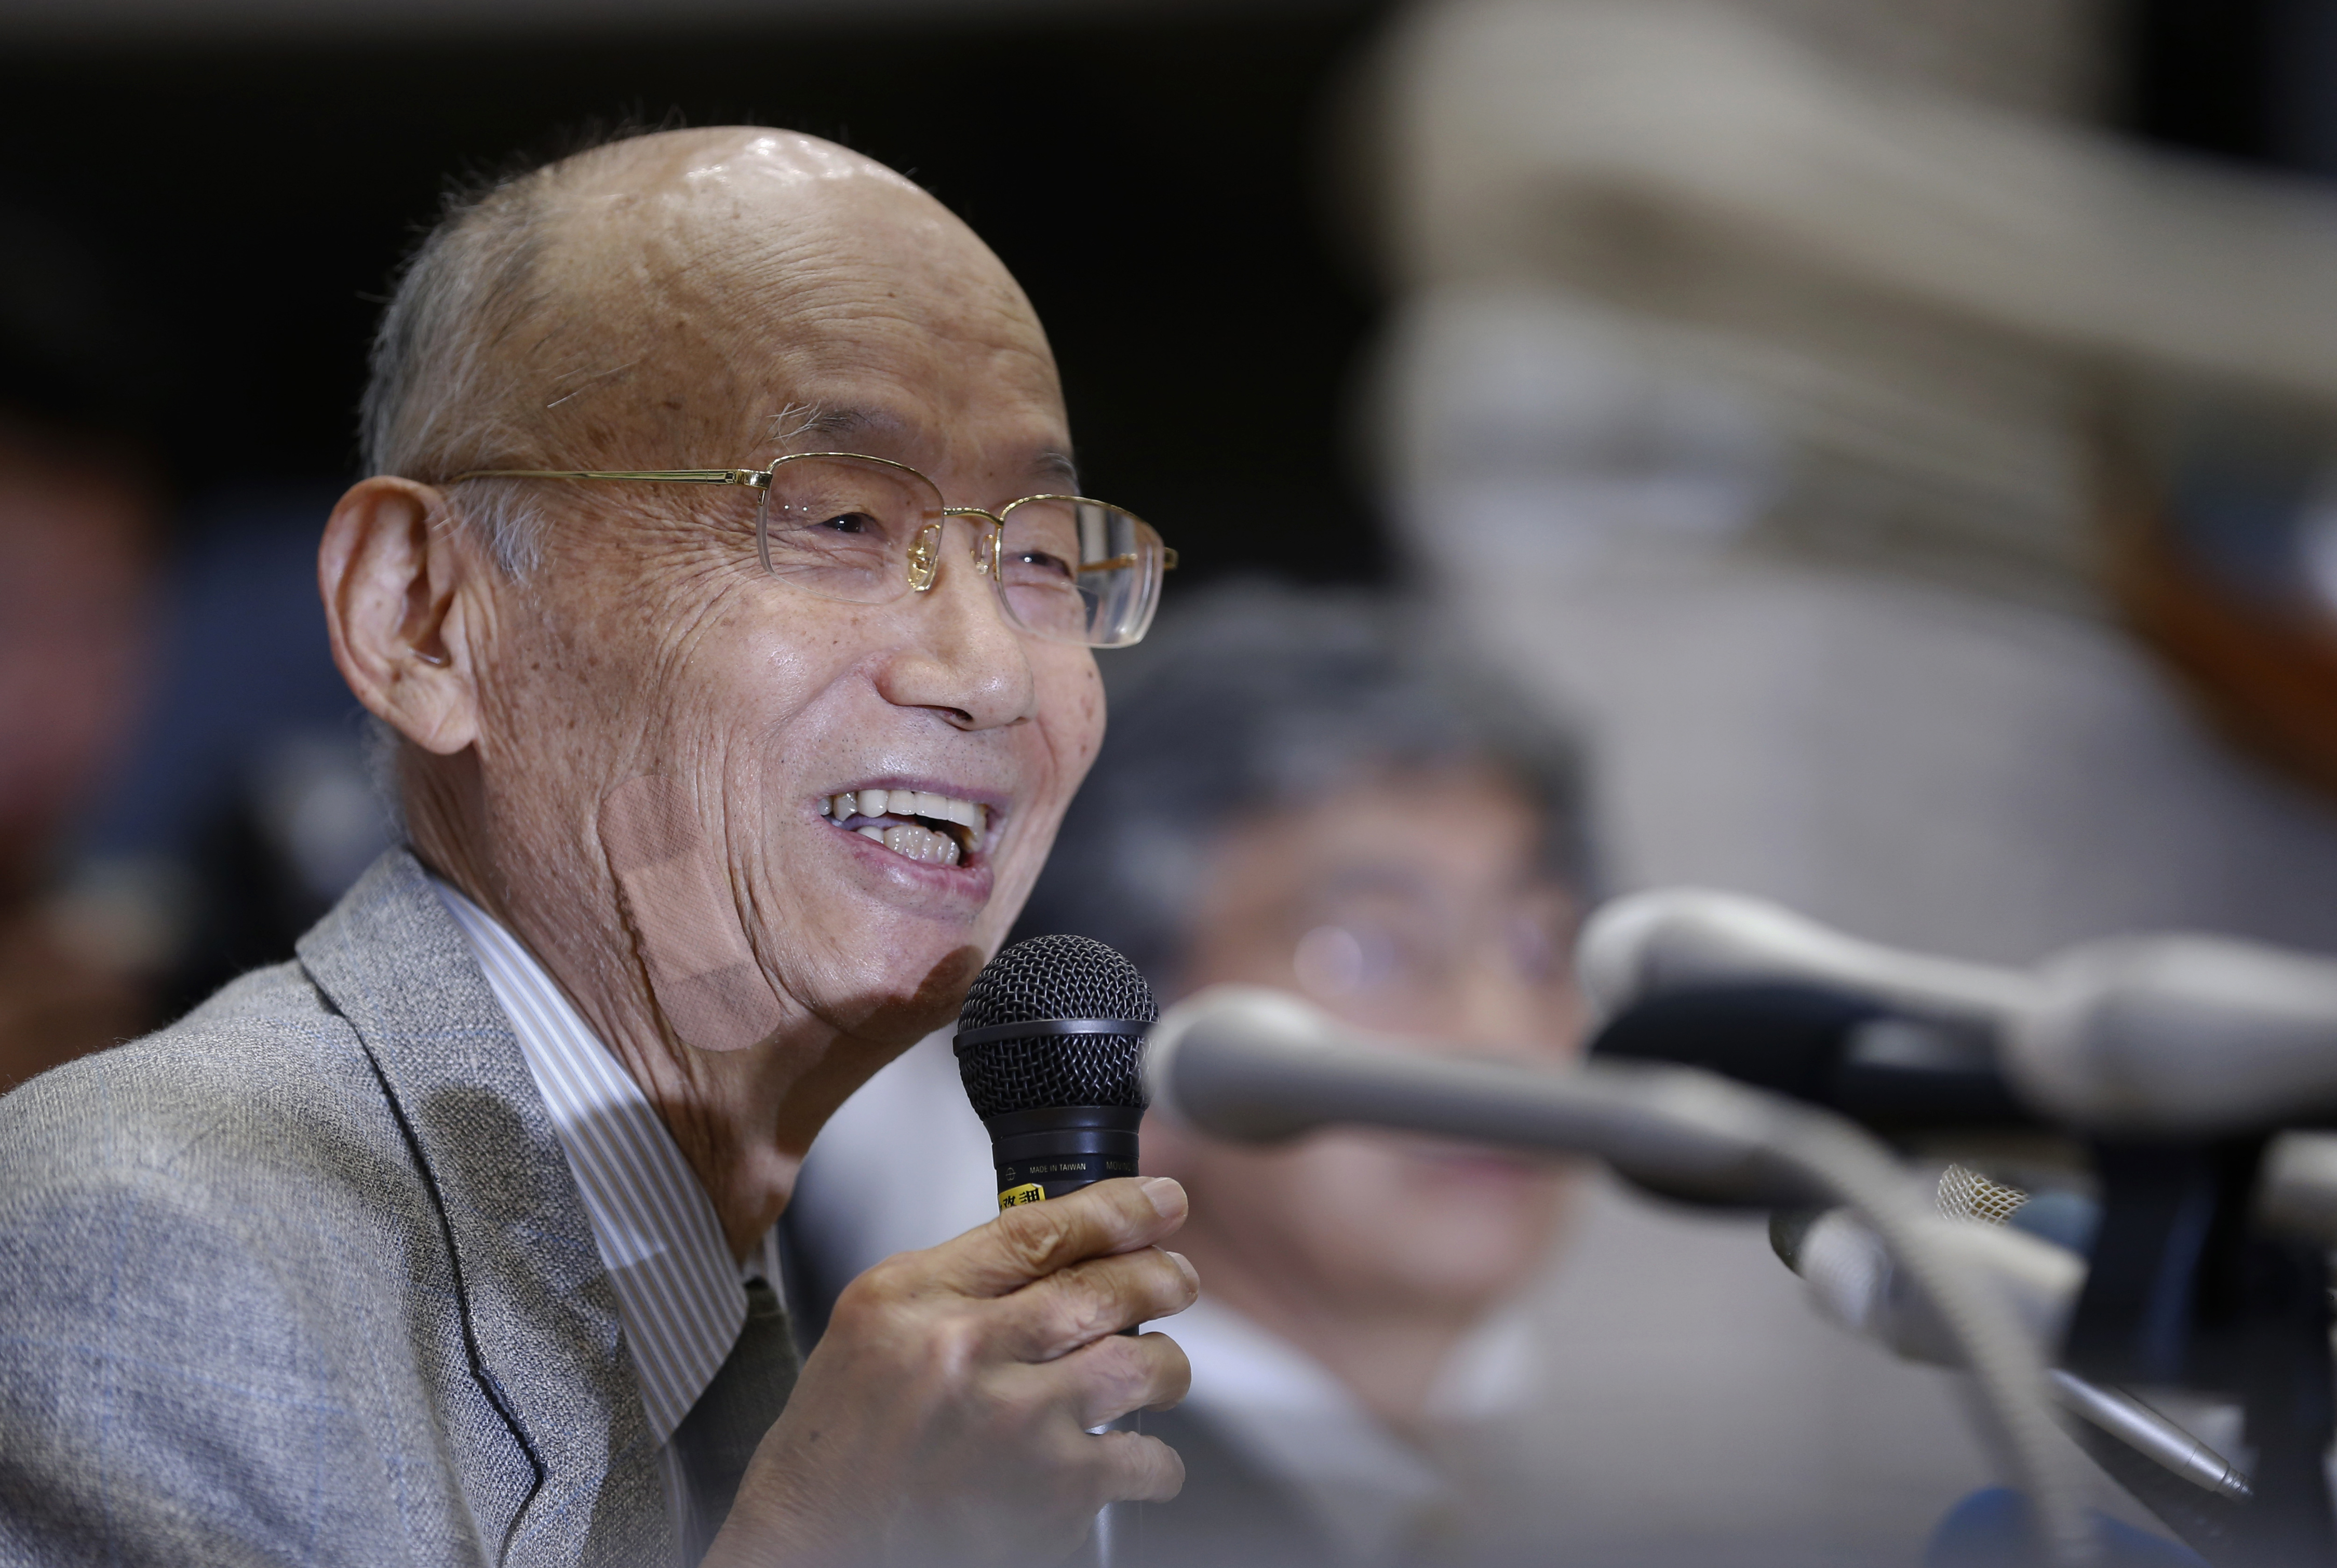 Kitasato University Prof. Emeritus Satoshi Omura attends a press conference at the university in Tokyo, Monday, Oct. 5, 2015. The Nobel judges awarded the prestigious prize to Omura, Irish-born William Campbell and Tu Youyou - the first-ever Chinese medic